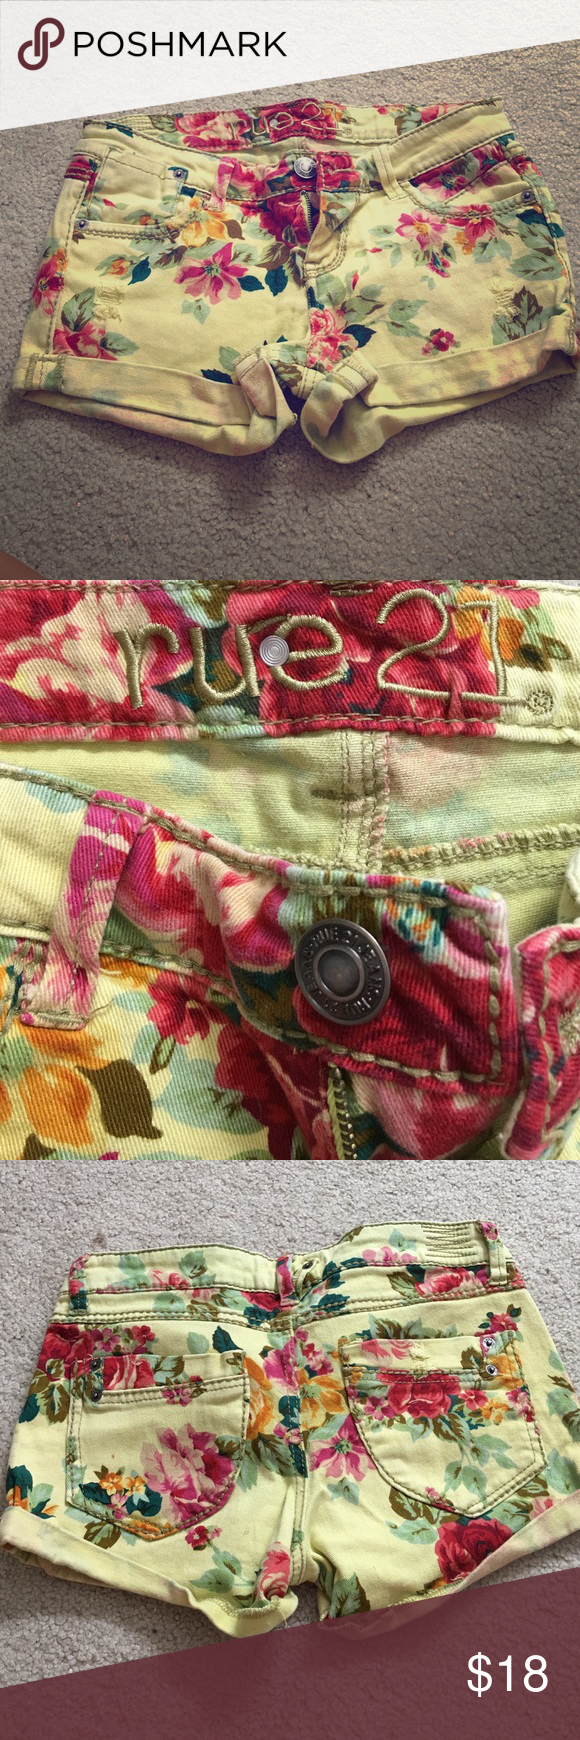 Rue 21 yellow and red flower print shorts Comfortable stretchy shorts! Yellow with red flowers print. From Rue 21! In great condition. Rue 21 Shorts